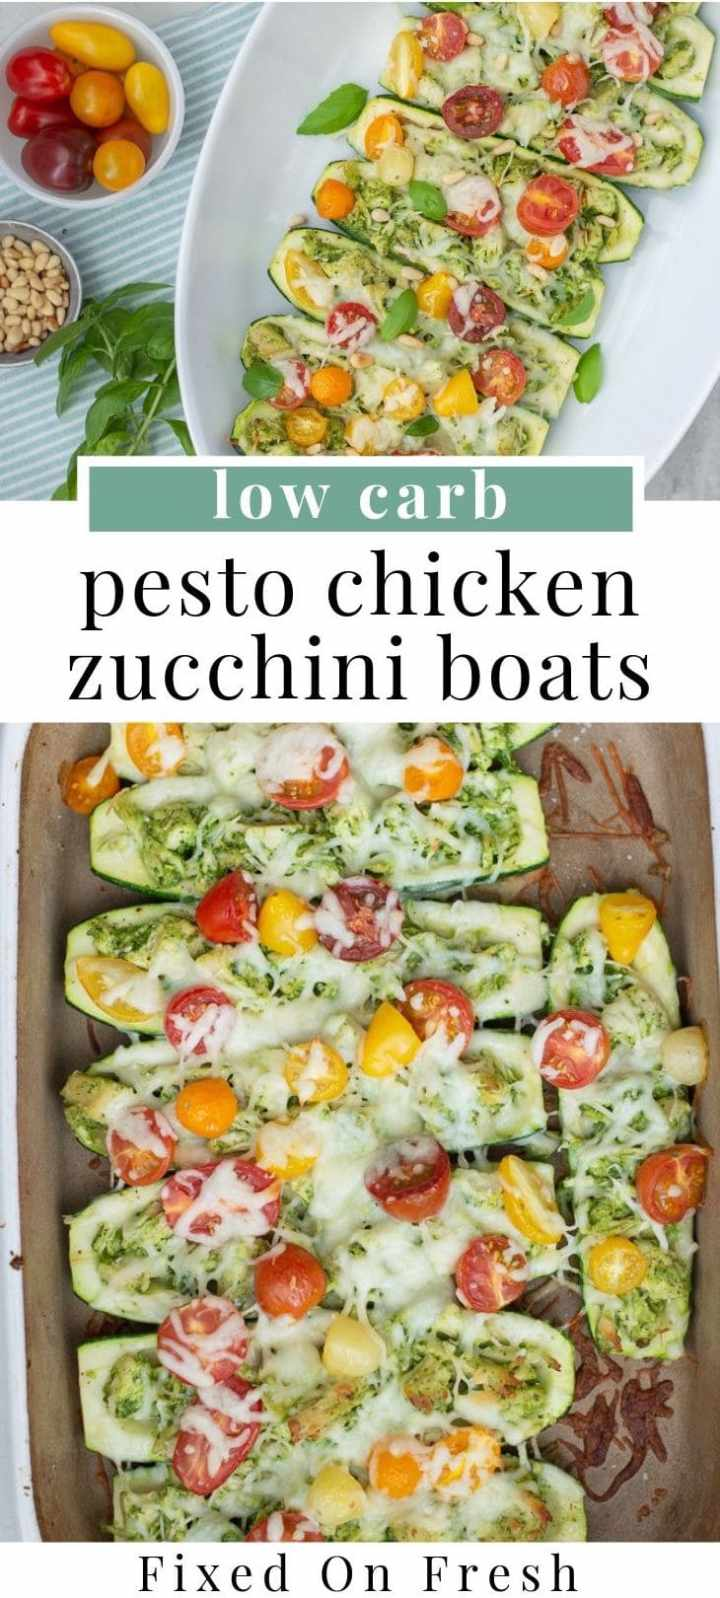 Low carb pesto chicken zucchini boats are stuffed with chicken coated with homemade pesto and sprinkled with cherry tomatoes and pine nuts. This is a great weeknight dinner because it whips up so fast! #lowcarb #weeknightdinner